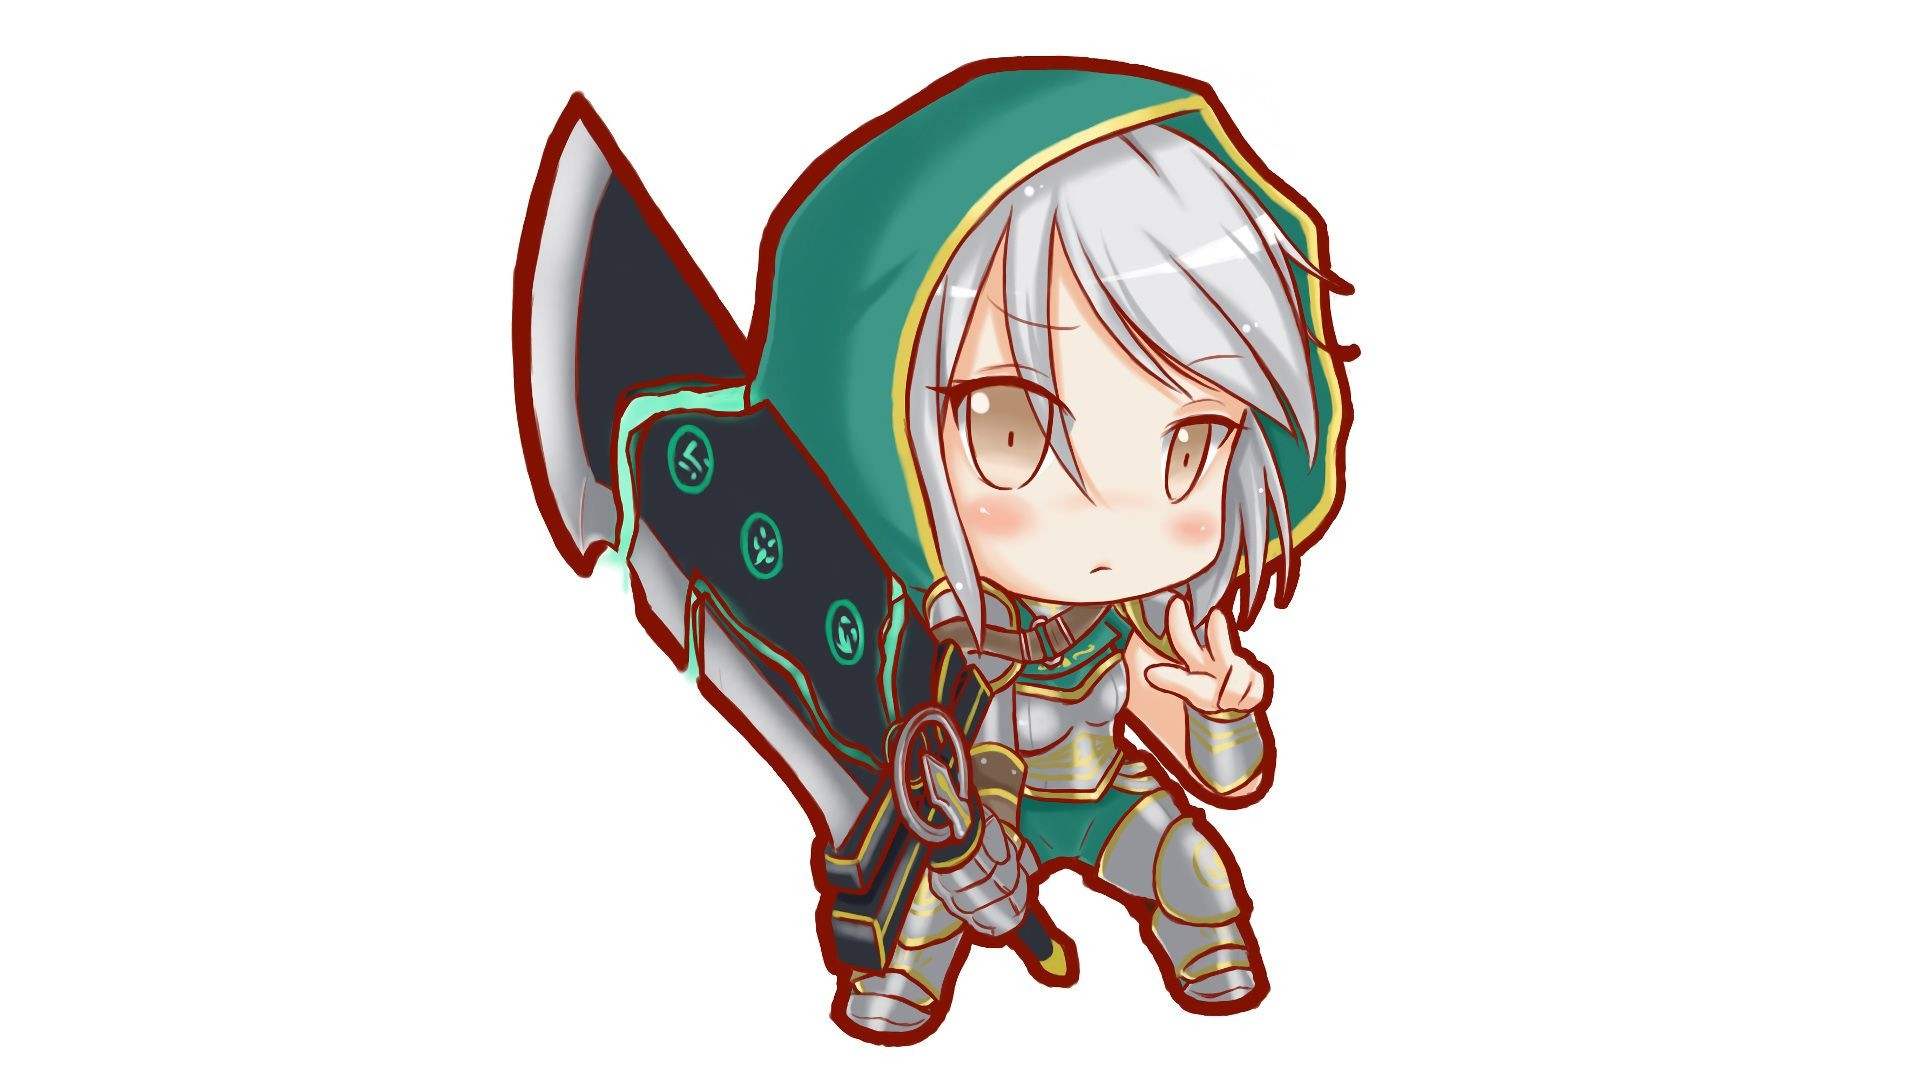 Res: 1920x1080, Chibi Redeemed Riven by みかみ HD Wallpaper Fan Art Artwork League of Legends  lol